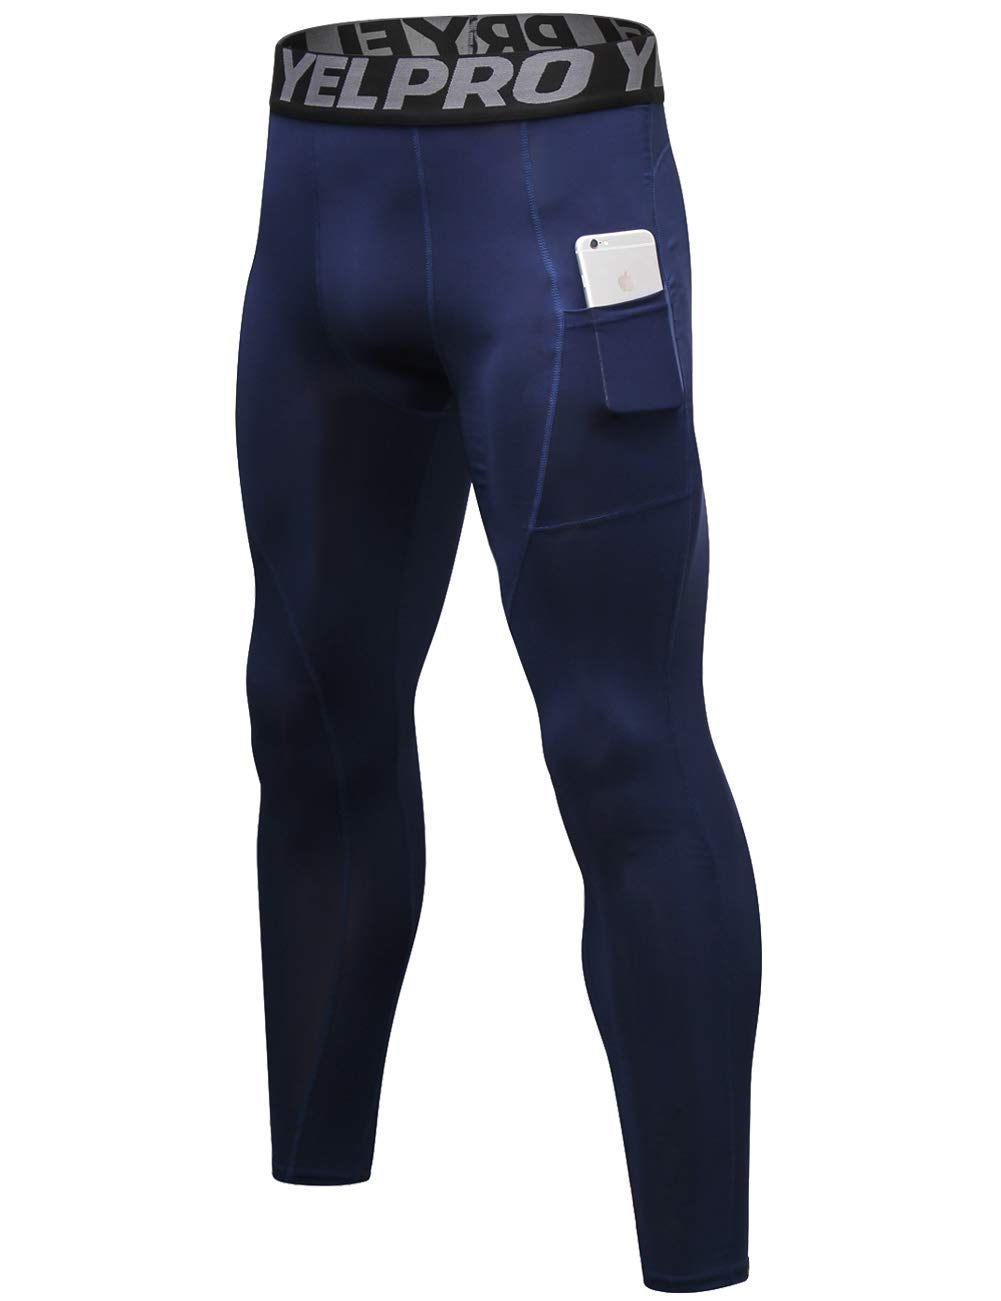 Lavento Men's Compression Pants Baselayer Cool Dry Pocket Running Ankle Leggings Active Tights (1 Pack-3911 Navy Blue,X-Large) by Lavento